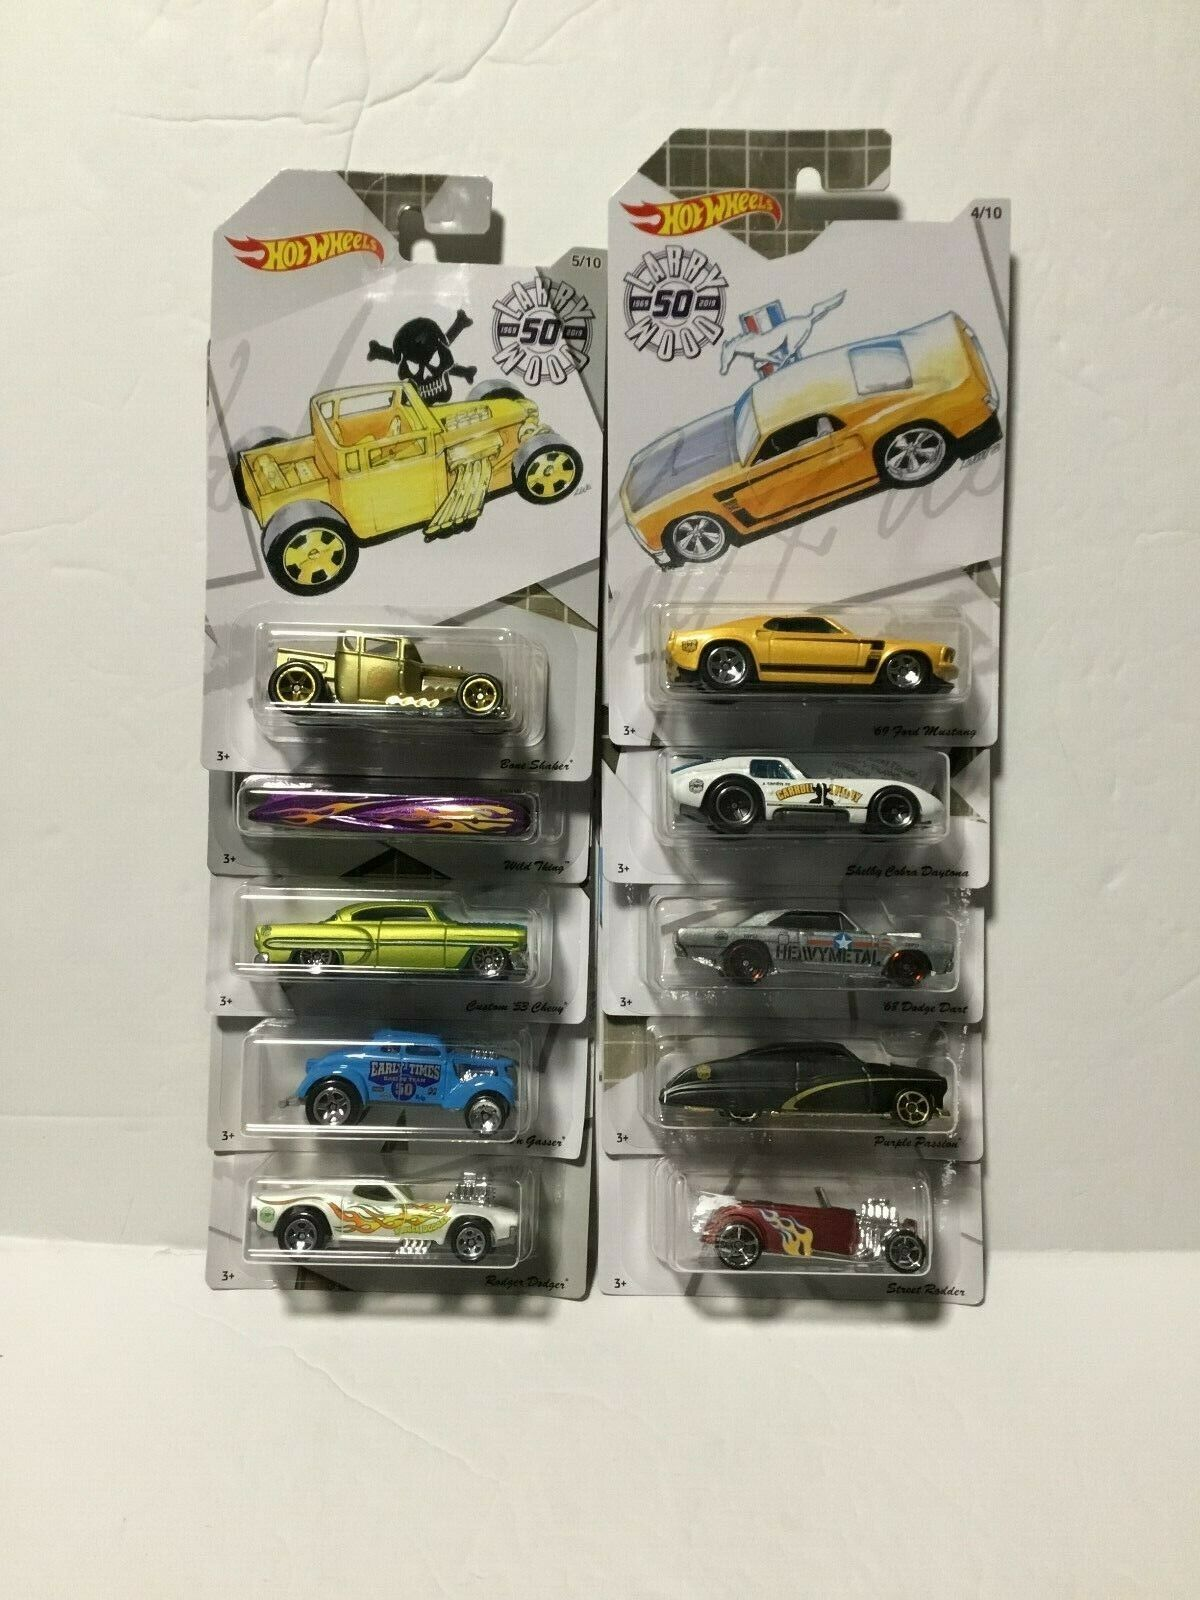 2019 HOT WHEELS 50th Anniversaire Larry Wood collection BN